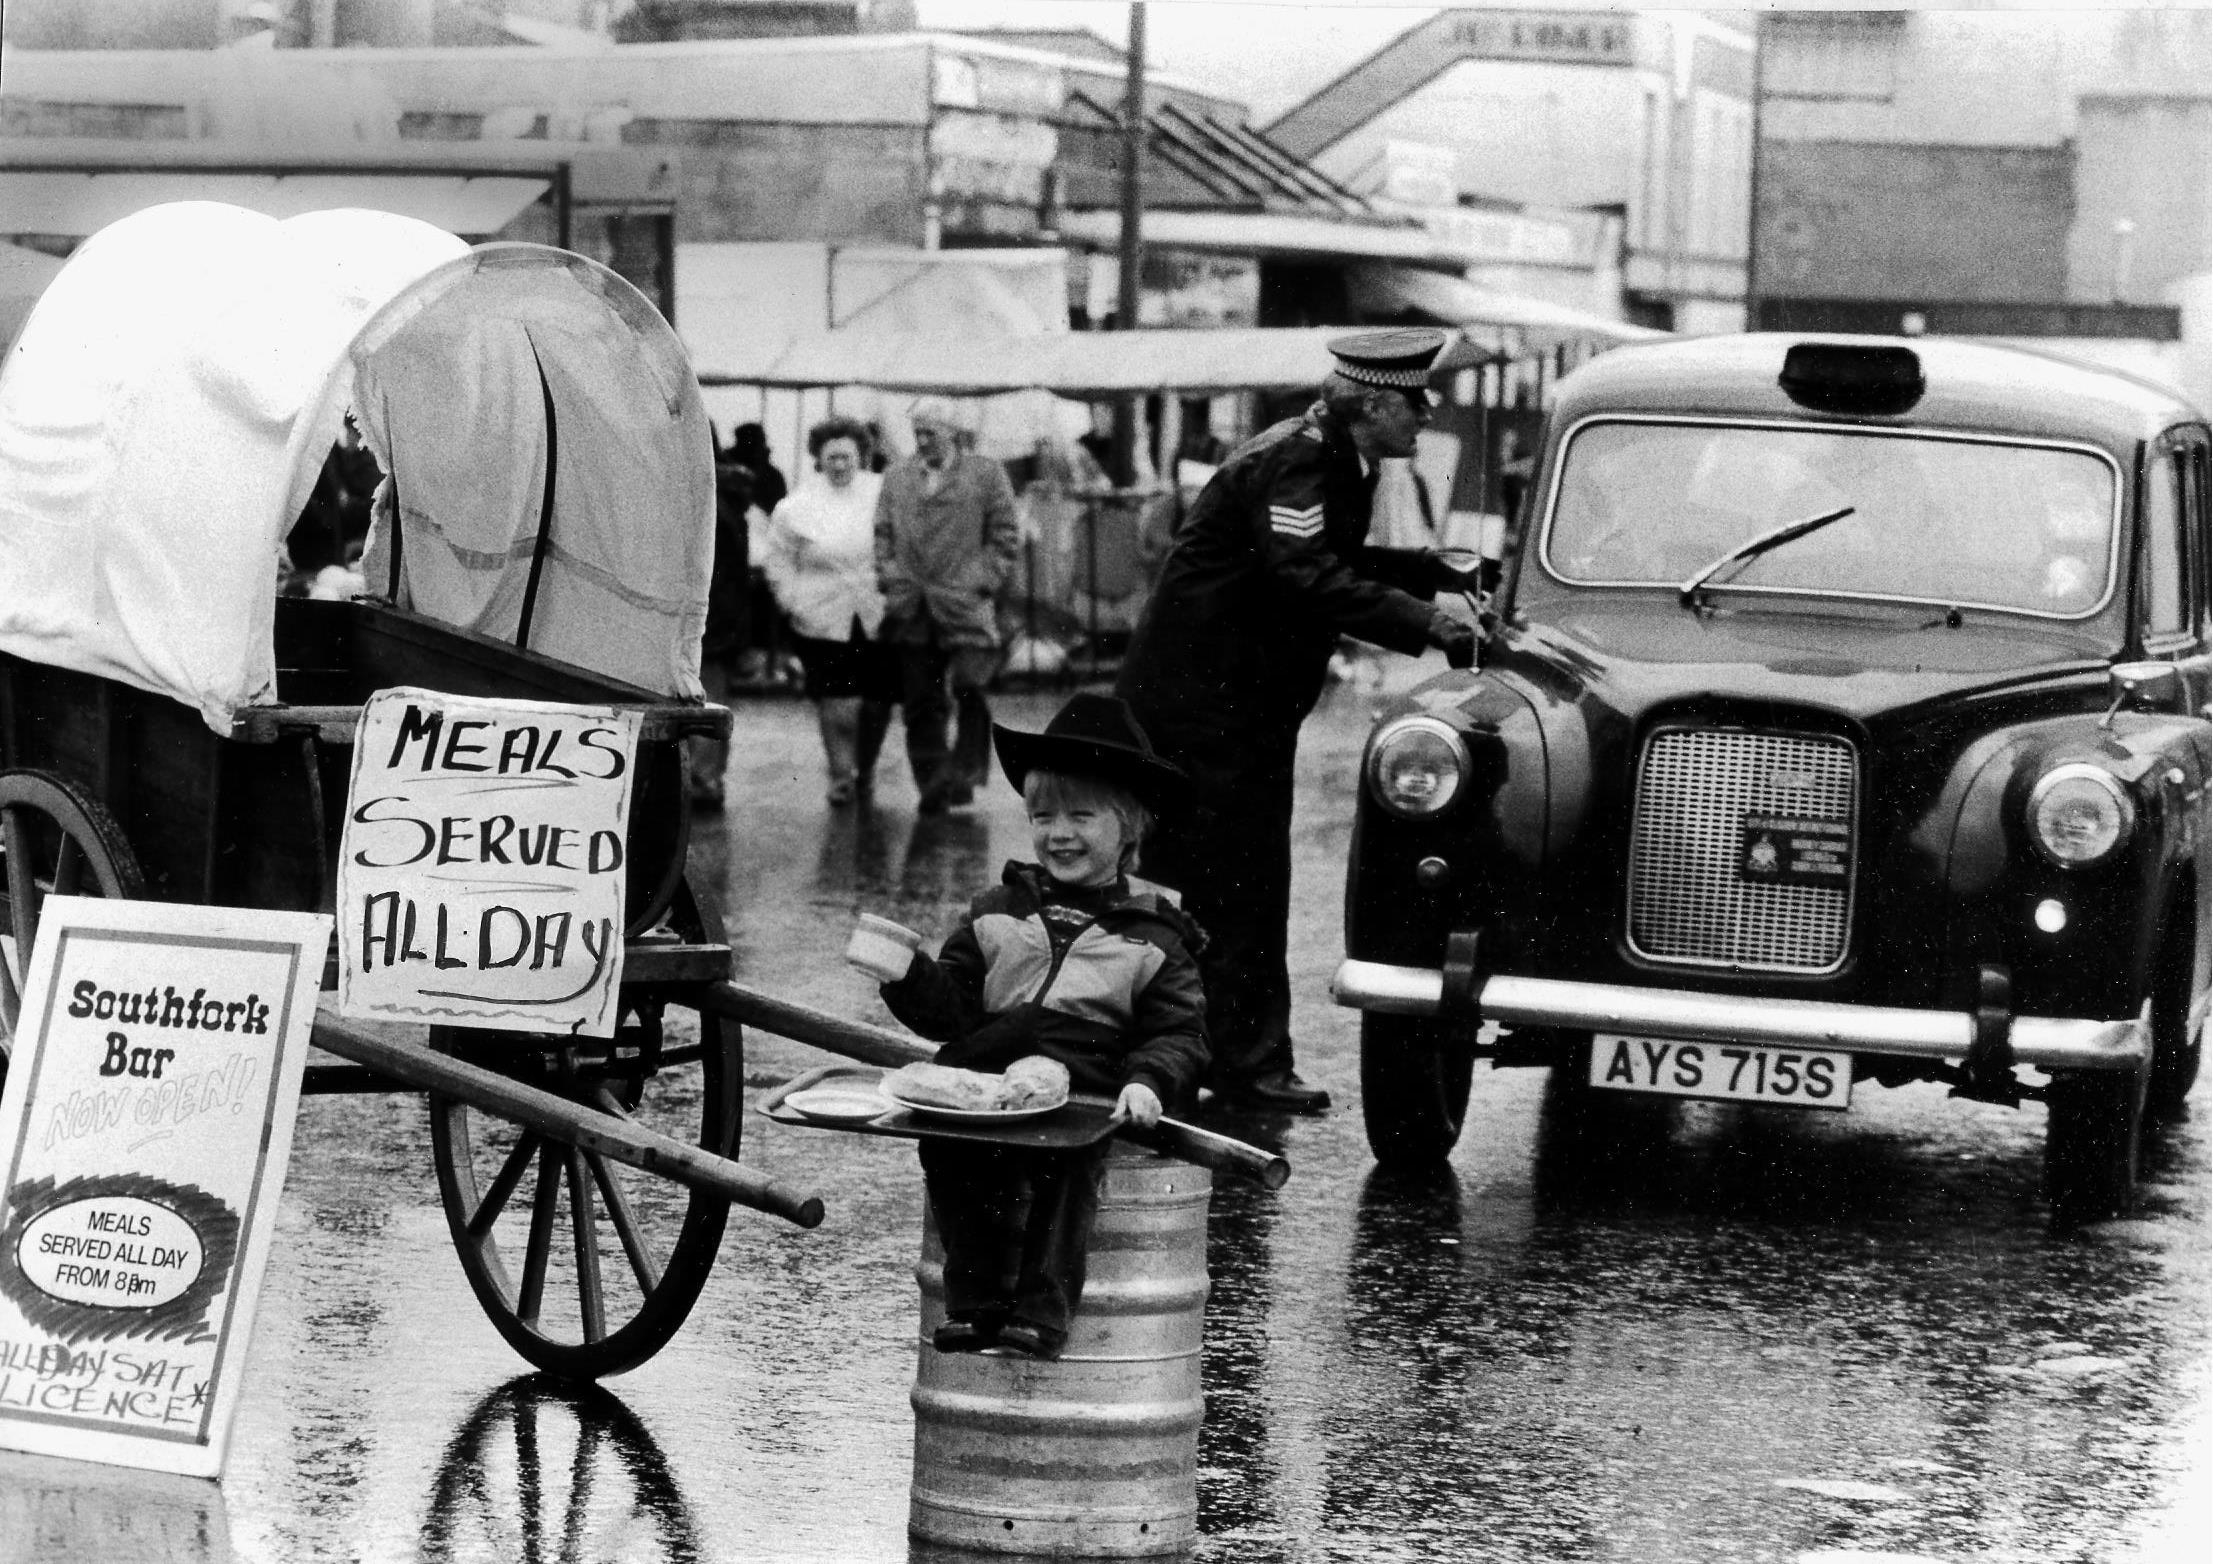 Times Past: Beautiful image of The Barras offers insight into Glasgow's rich history